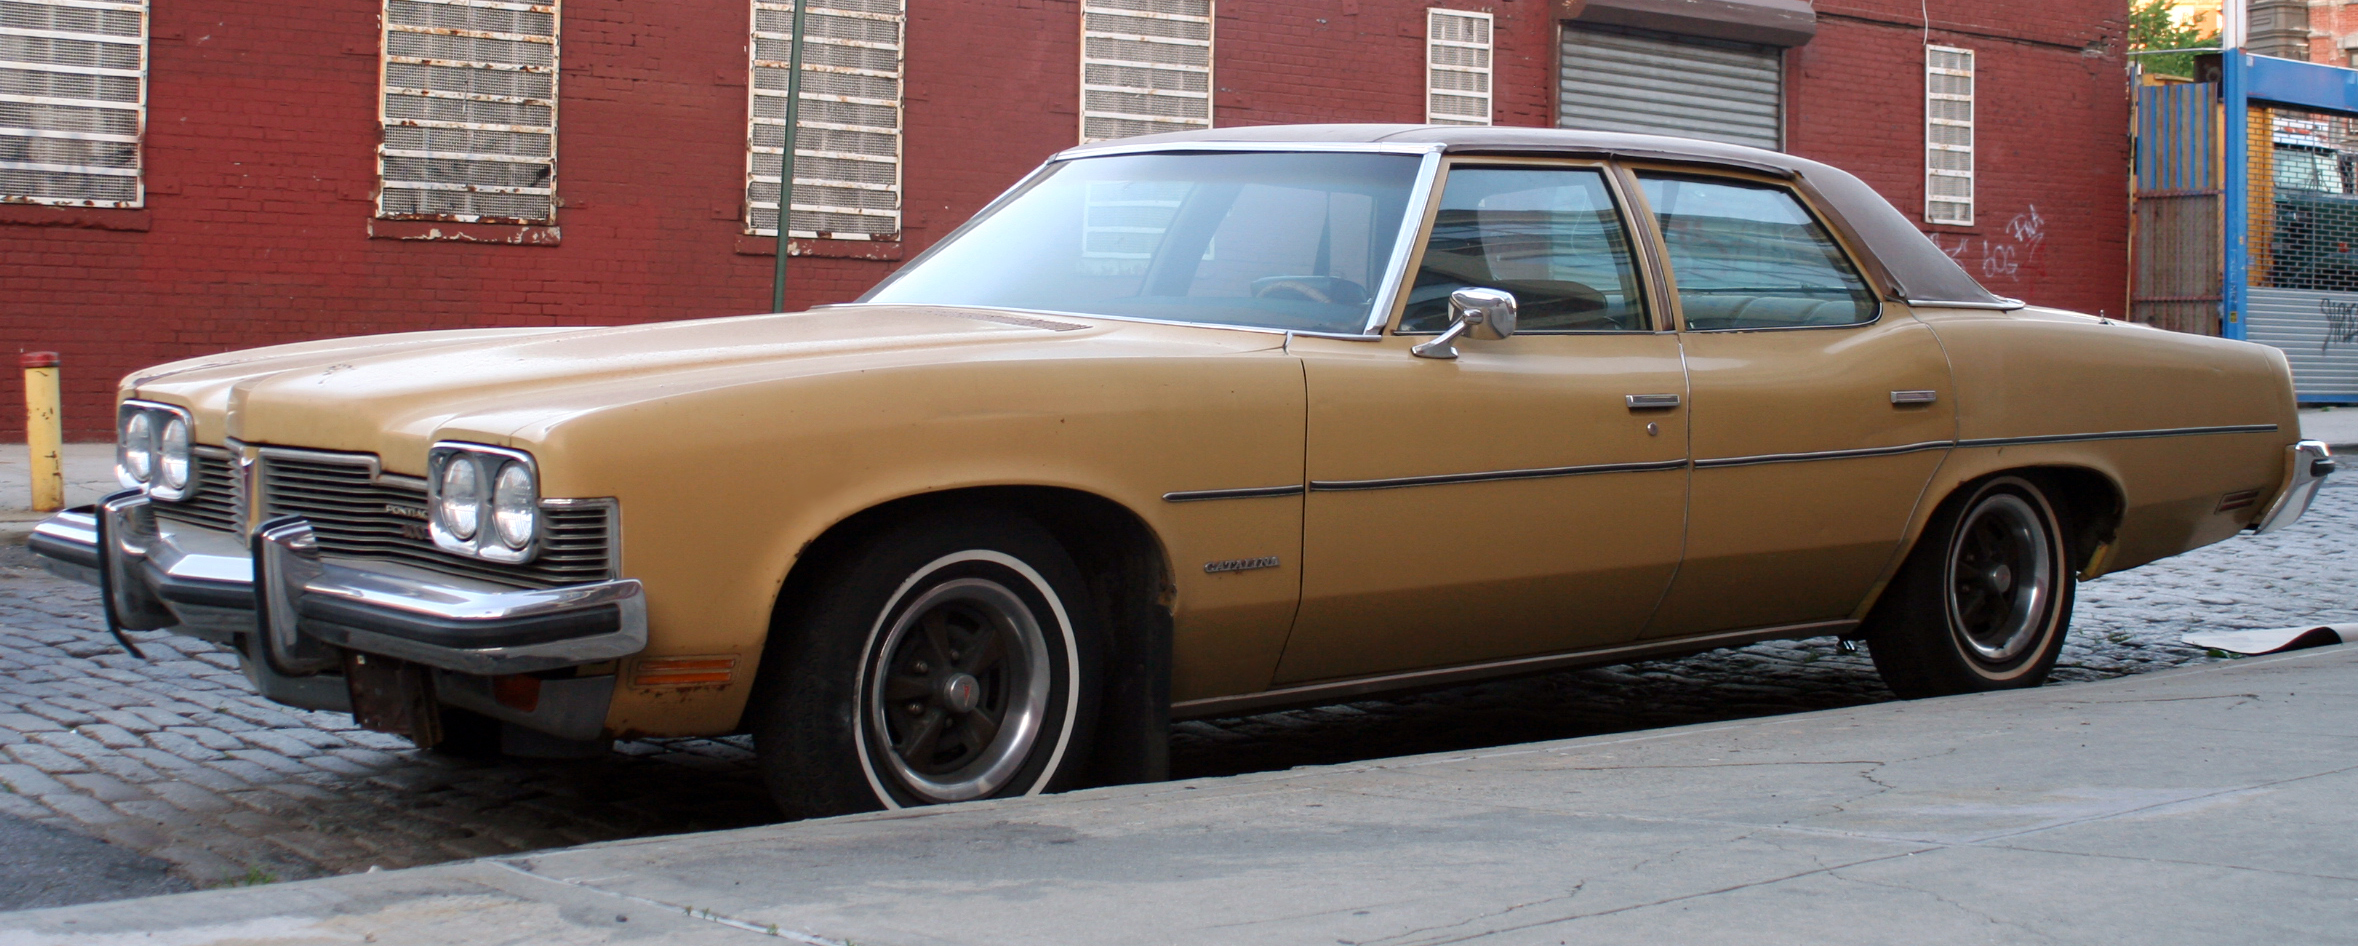 1973 Pontiac Catalina Information And Photos Momentcar